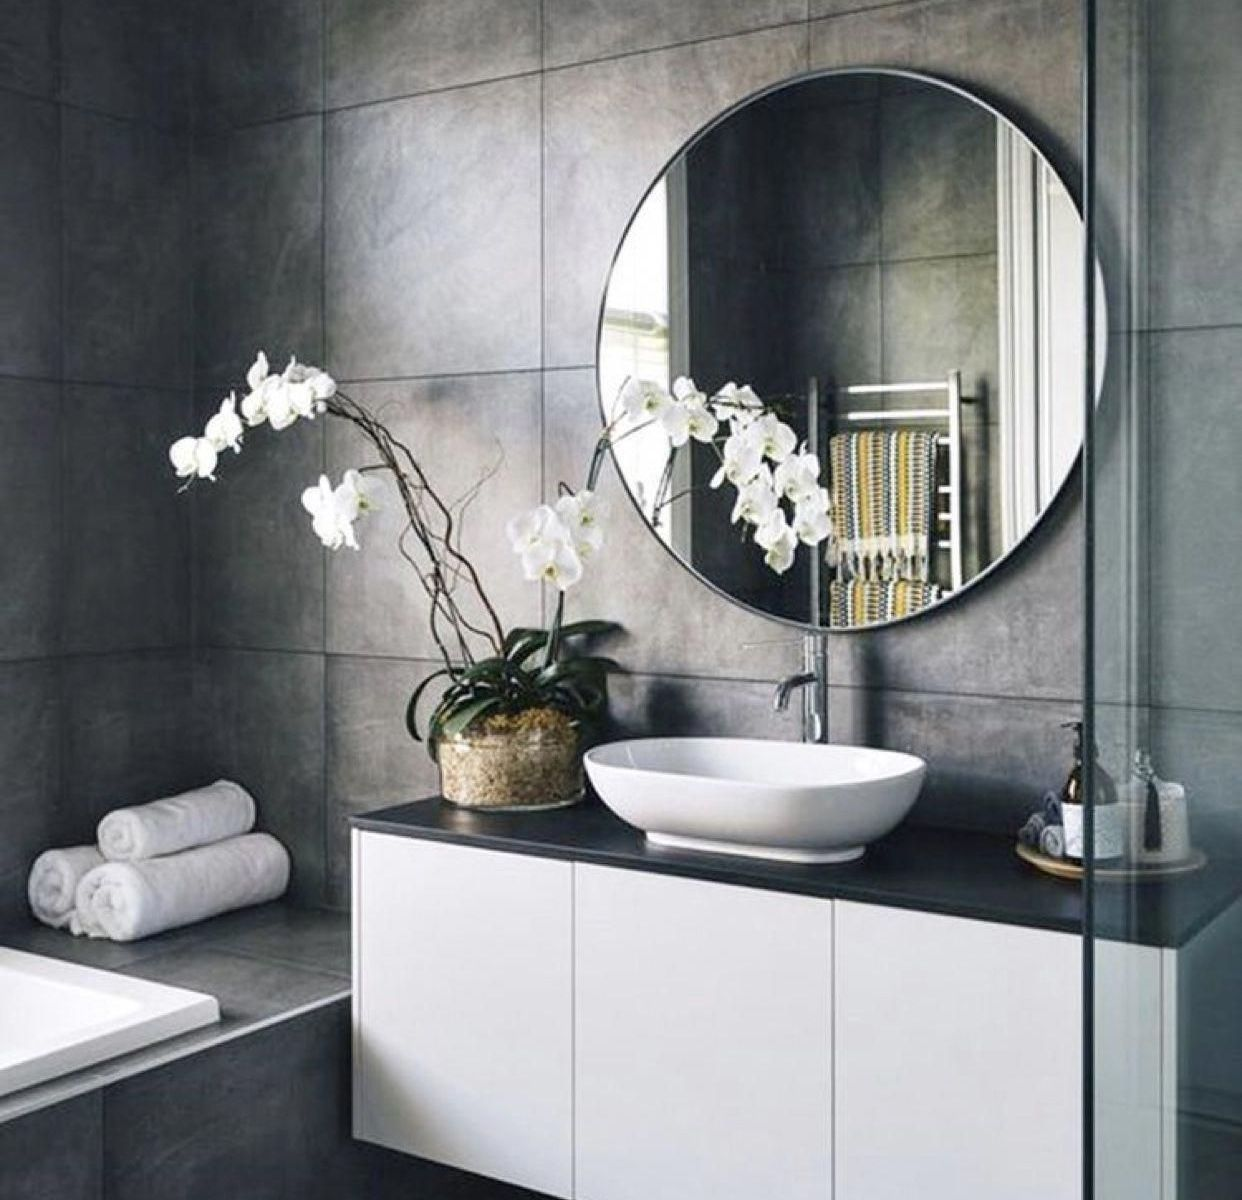 Bathroom Design for a New World